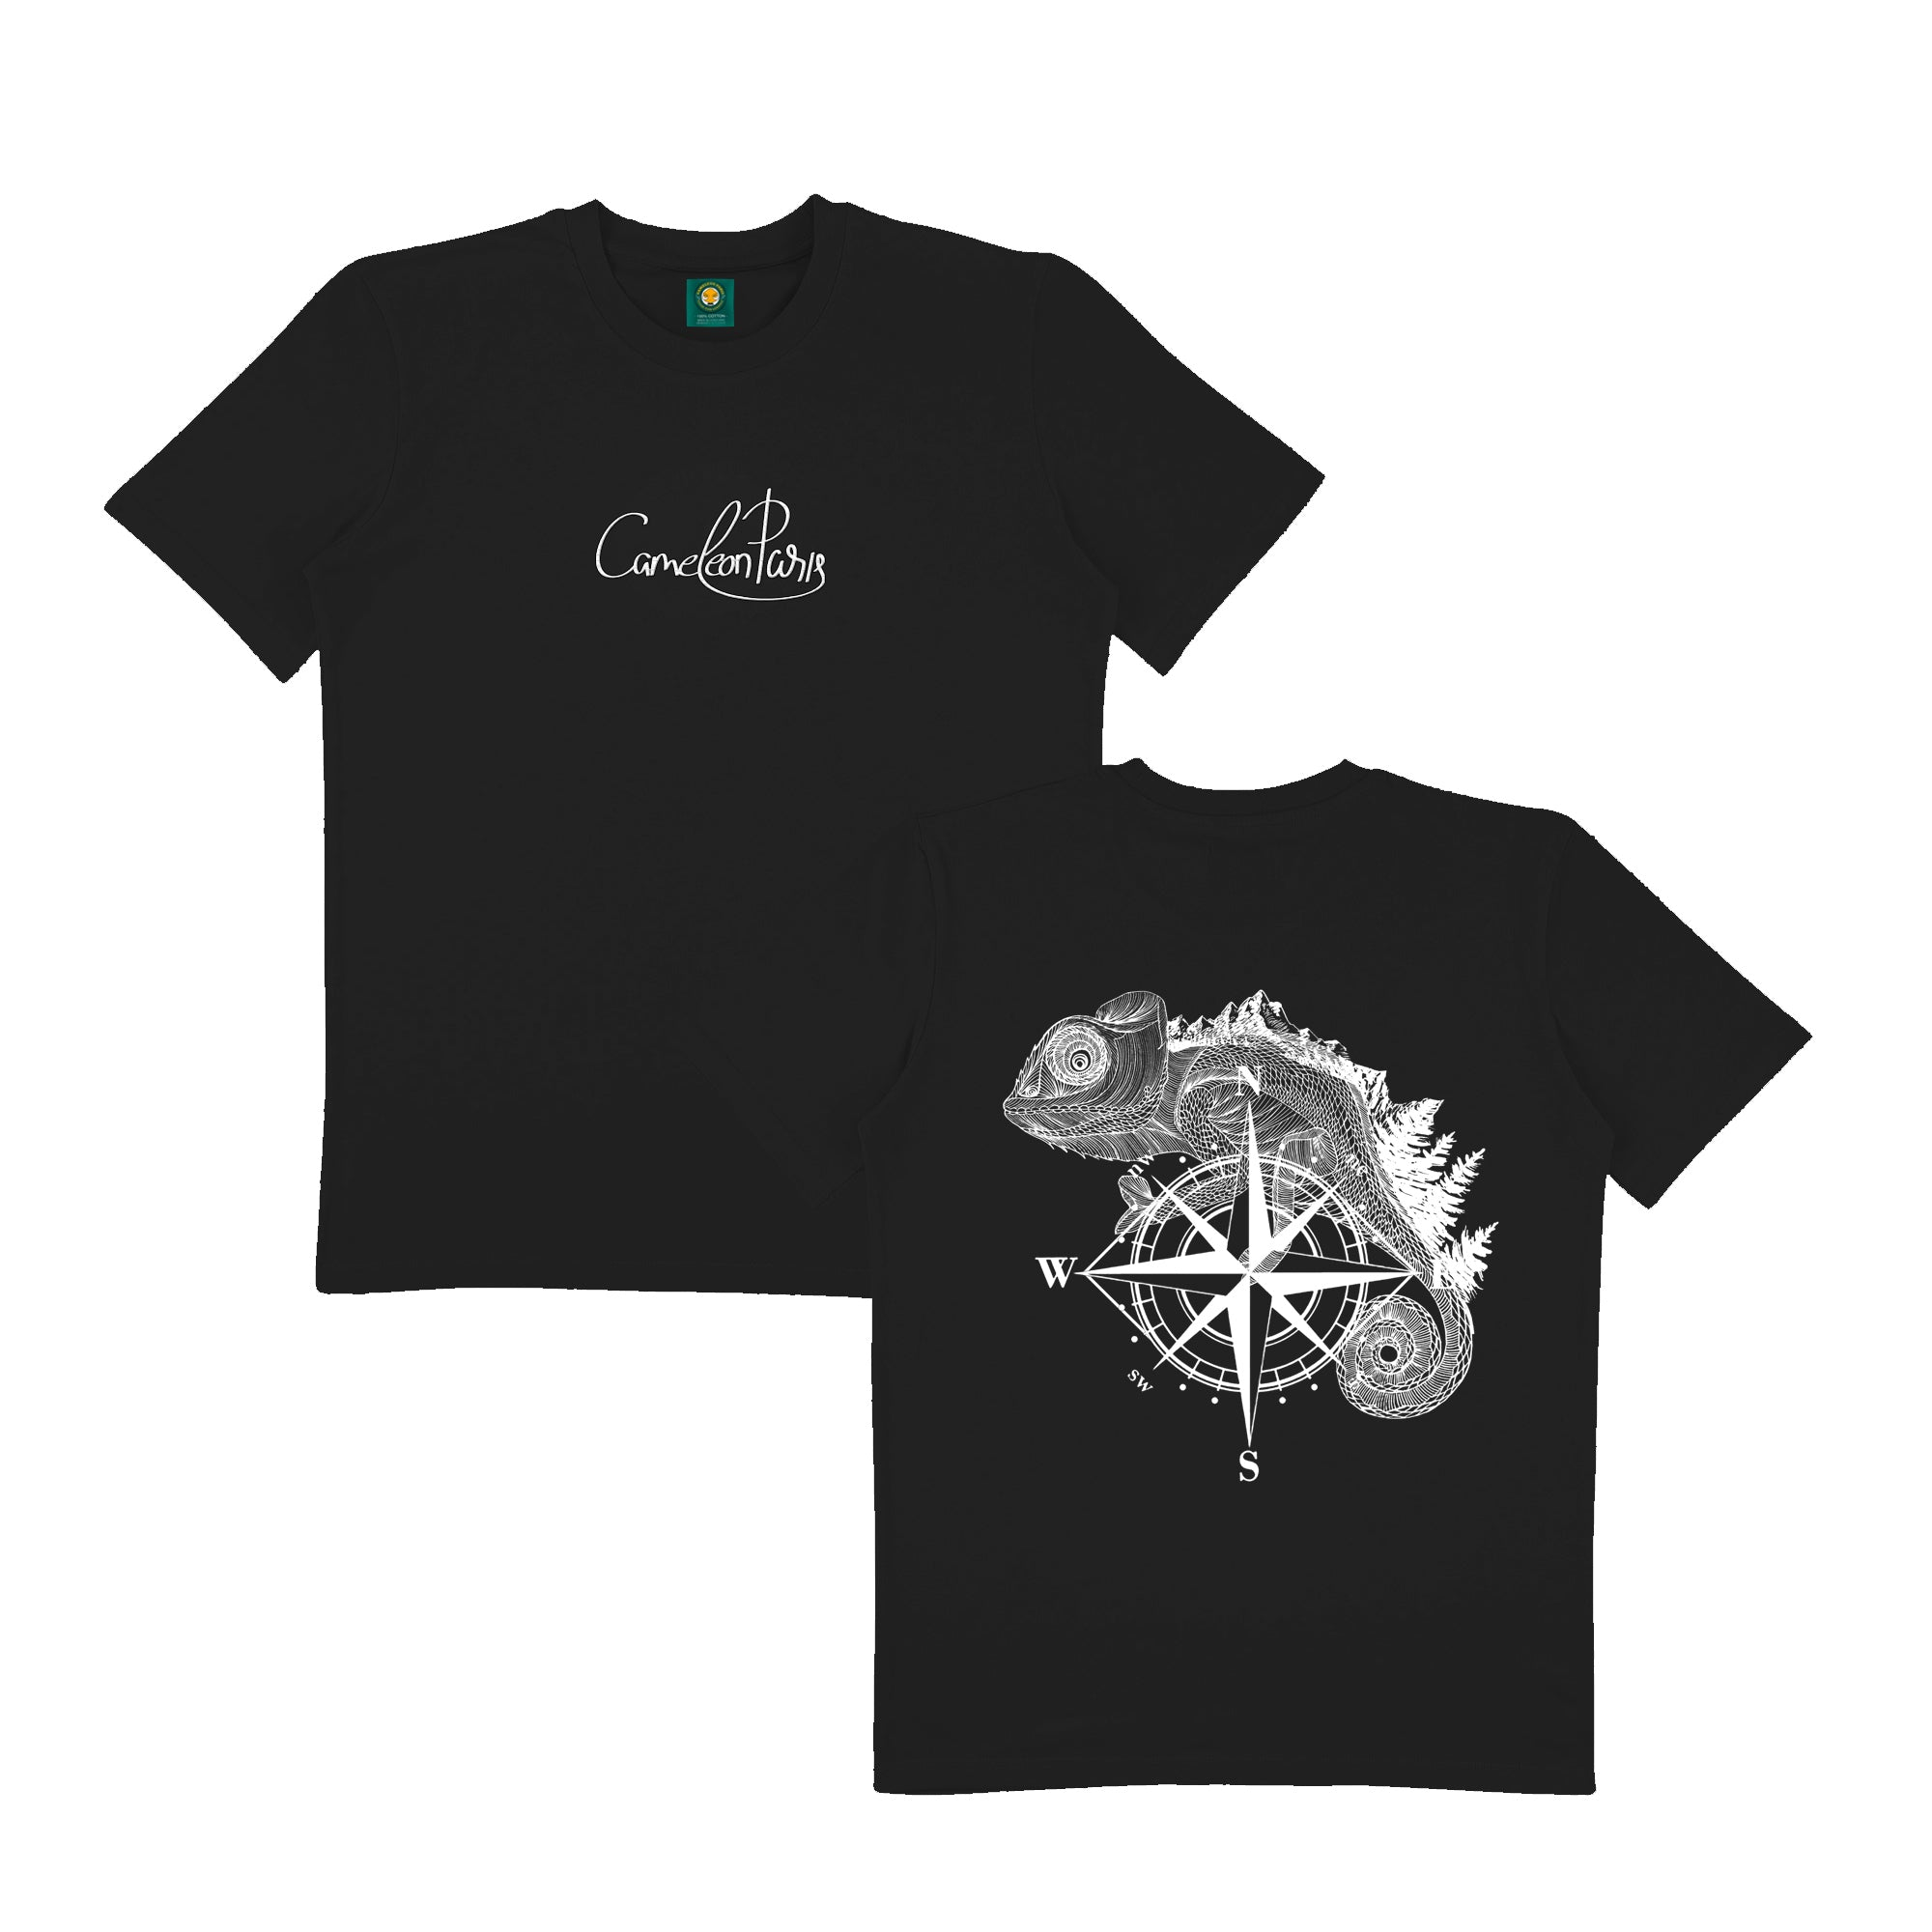 THE ADVENTURER - BLACK TEE SHIRT